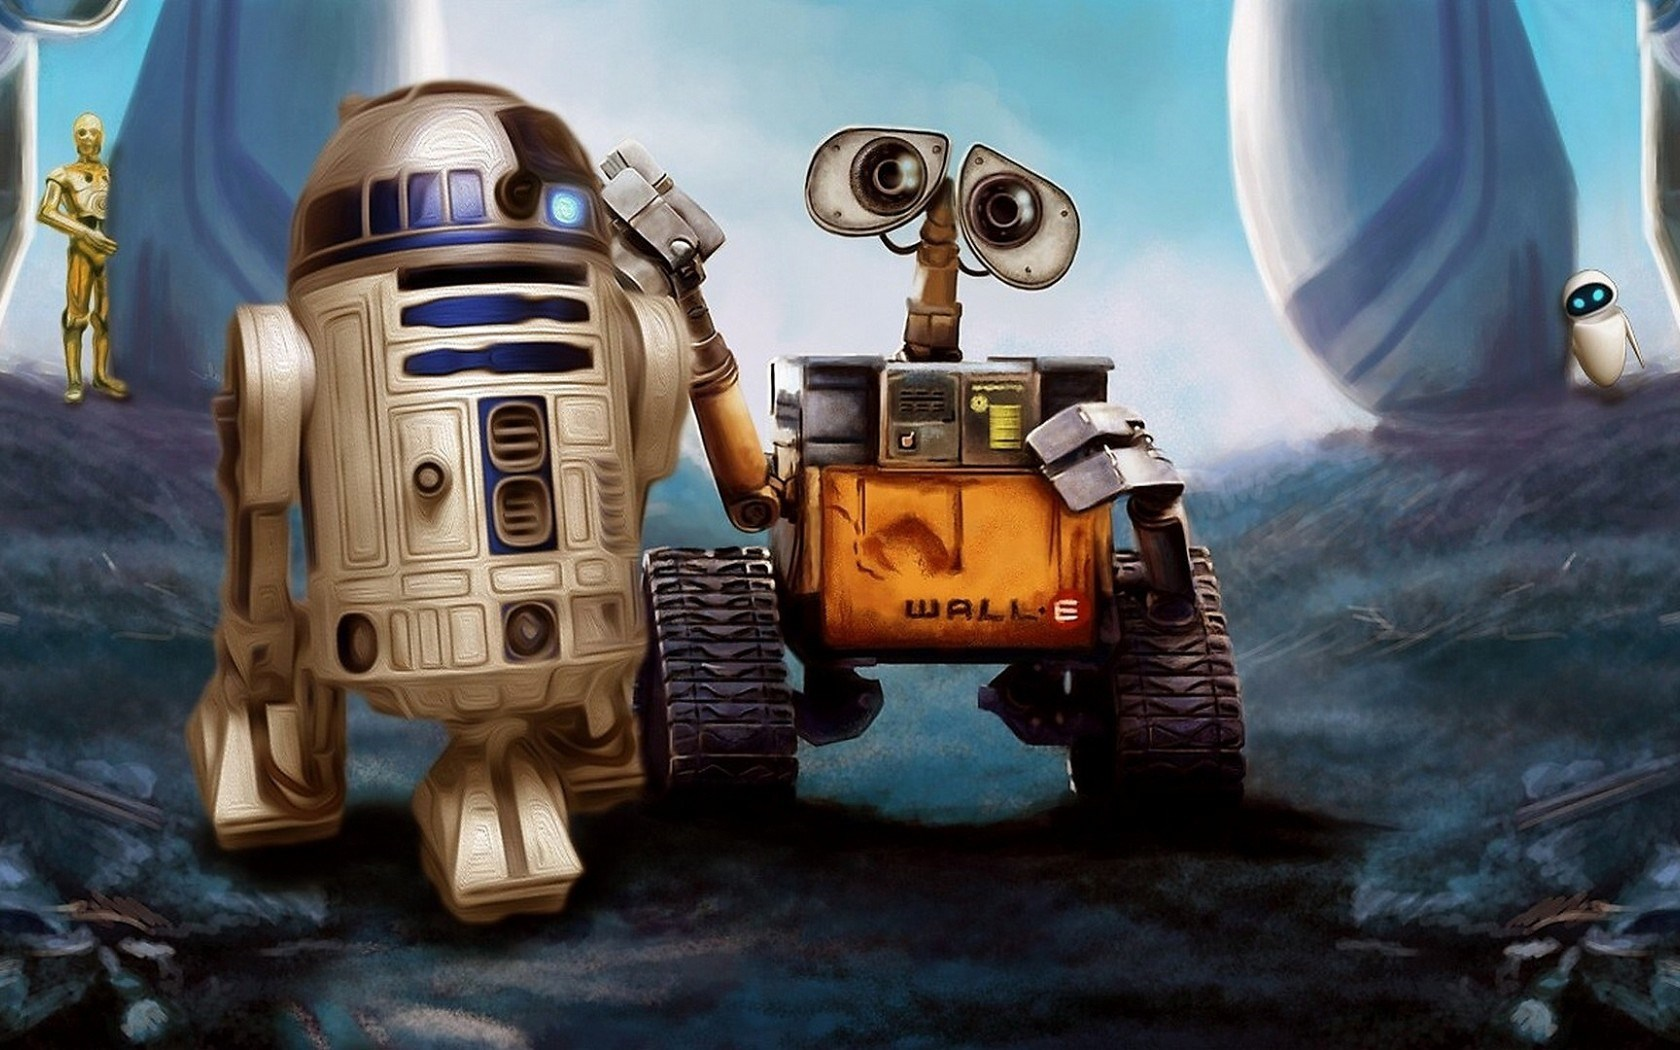 wall-e r2-d2 star wars robots cartoon art wallpaper | 1680x1050 | #9739